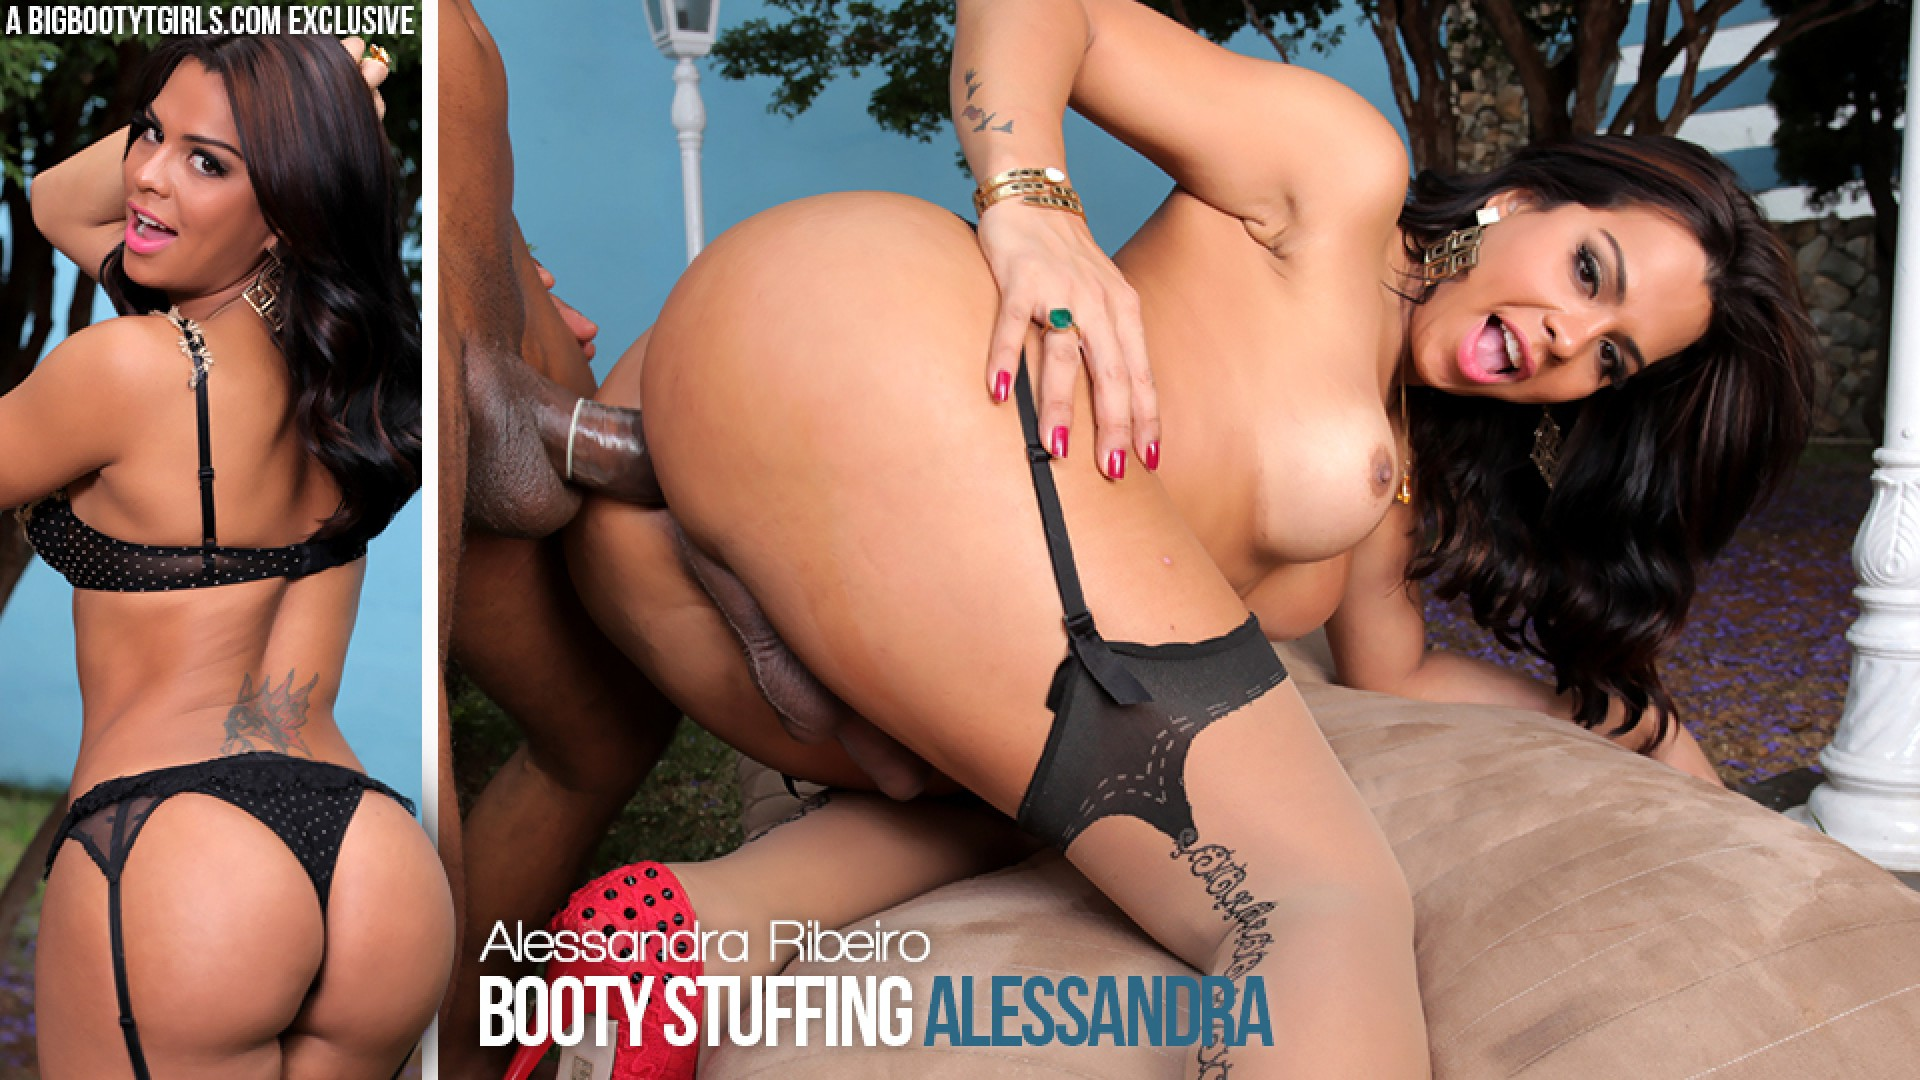 Alessandra Ribeiro Ass Fuking